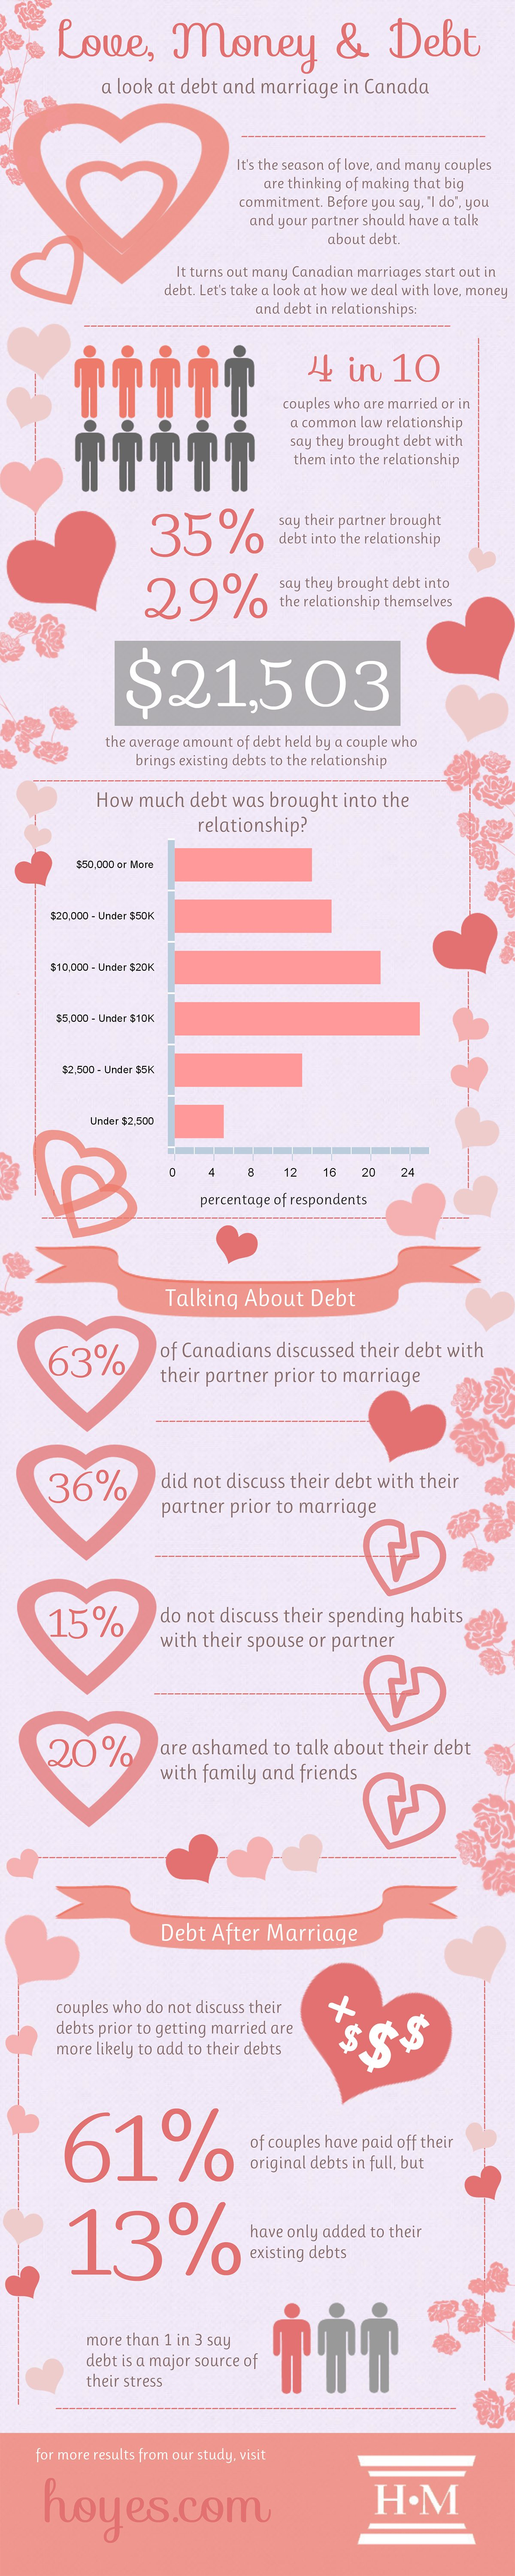 Marriage and Debt Survey Infographic